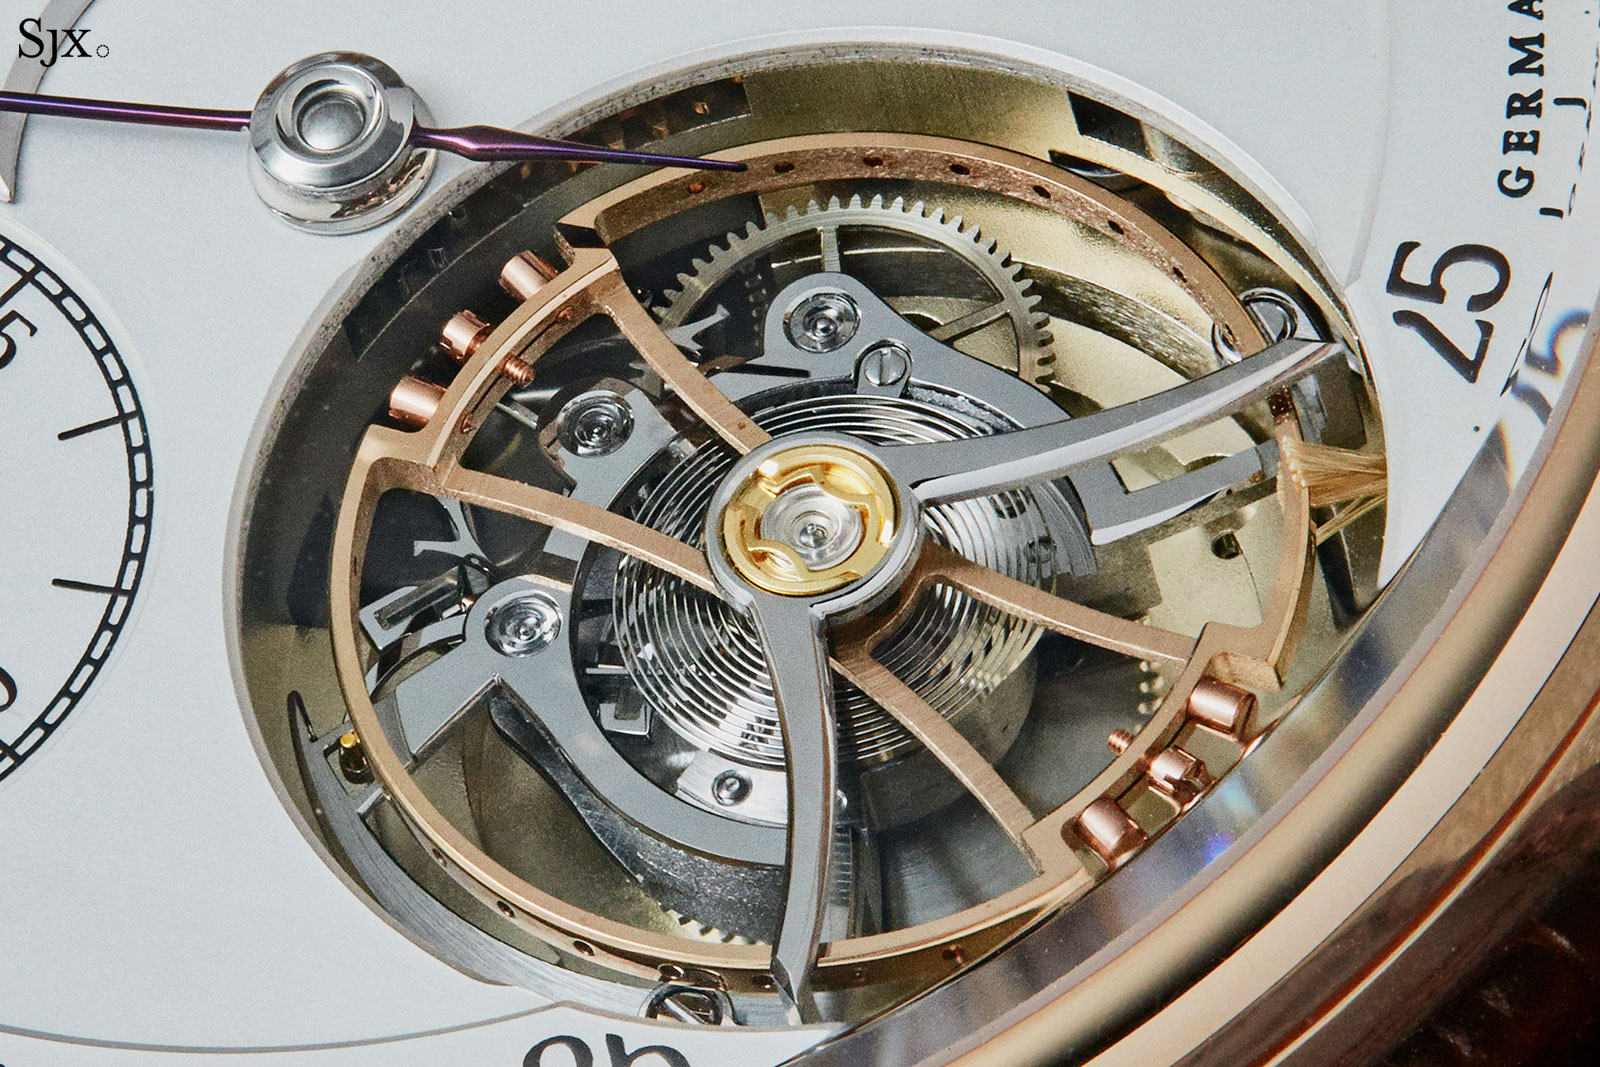 Moritz Grossmann Benu tourbillon rose gold 4